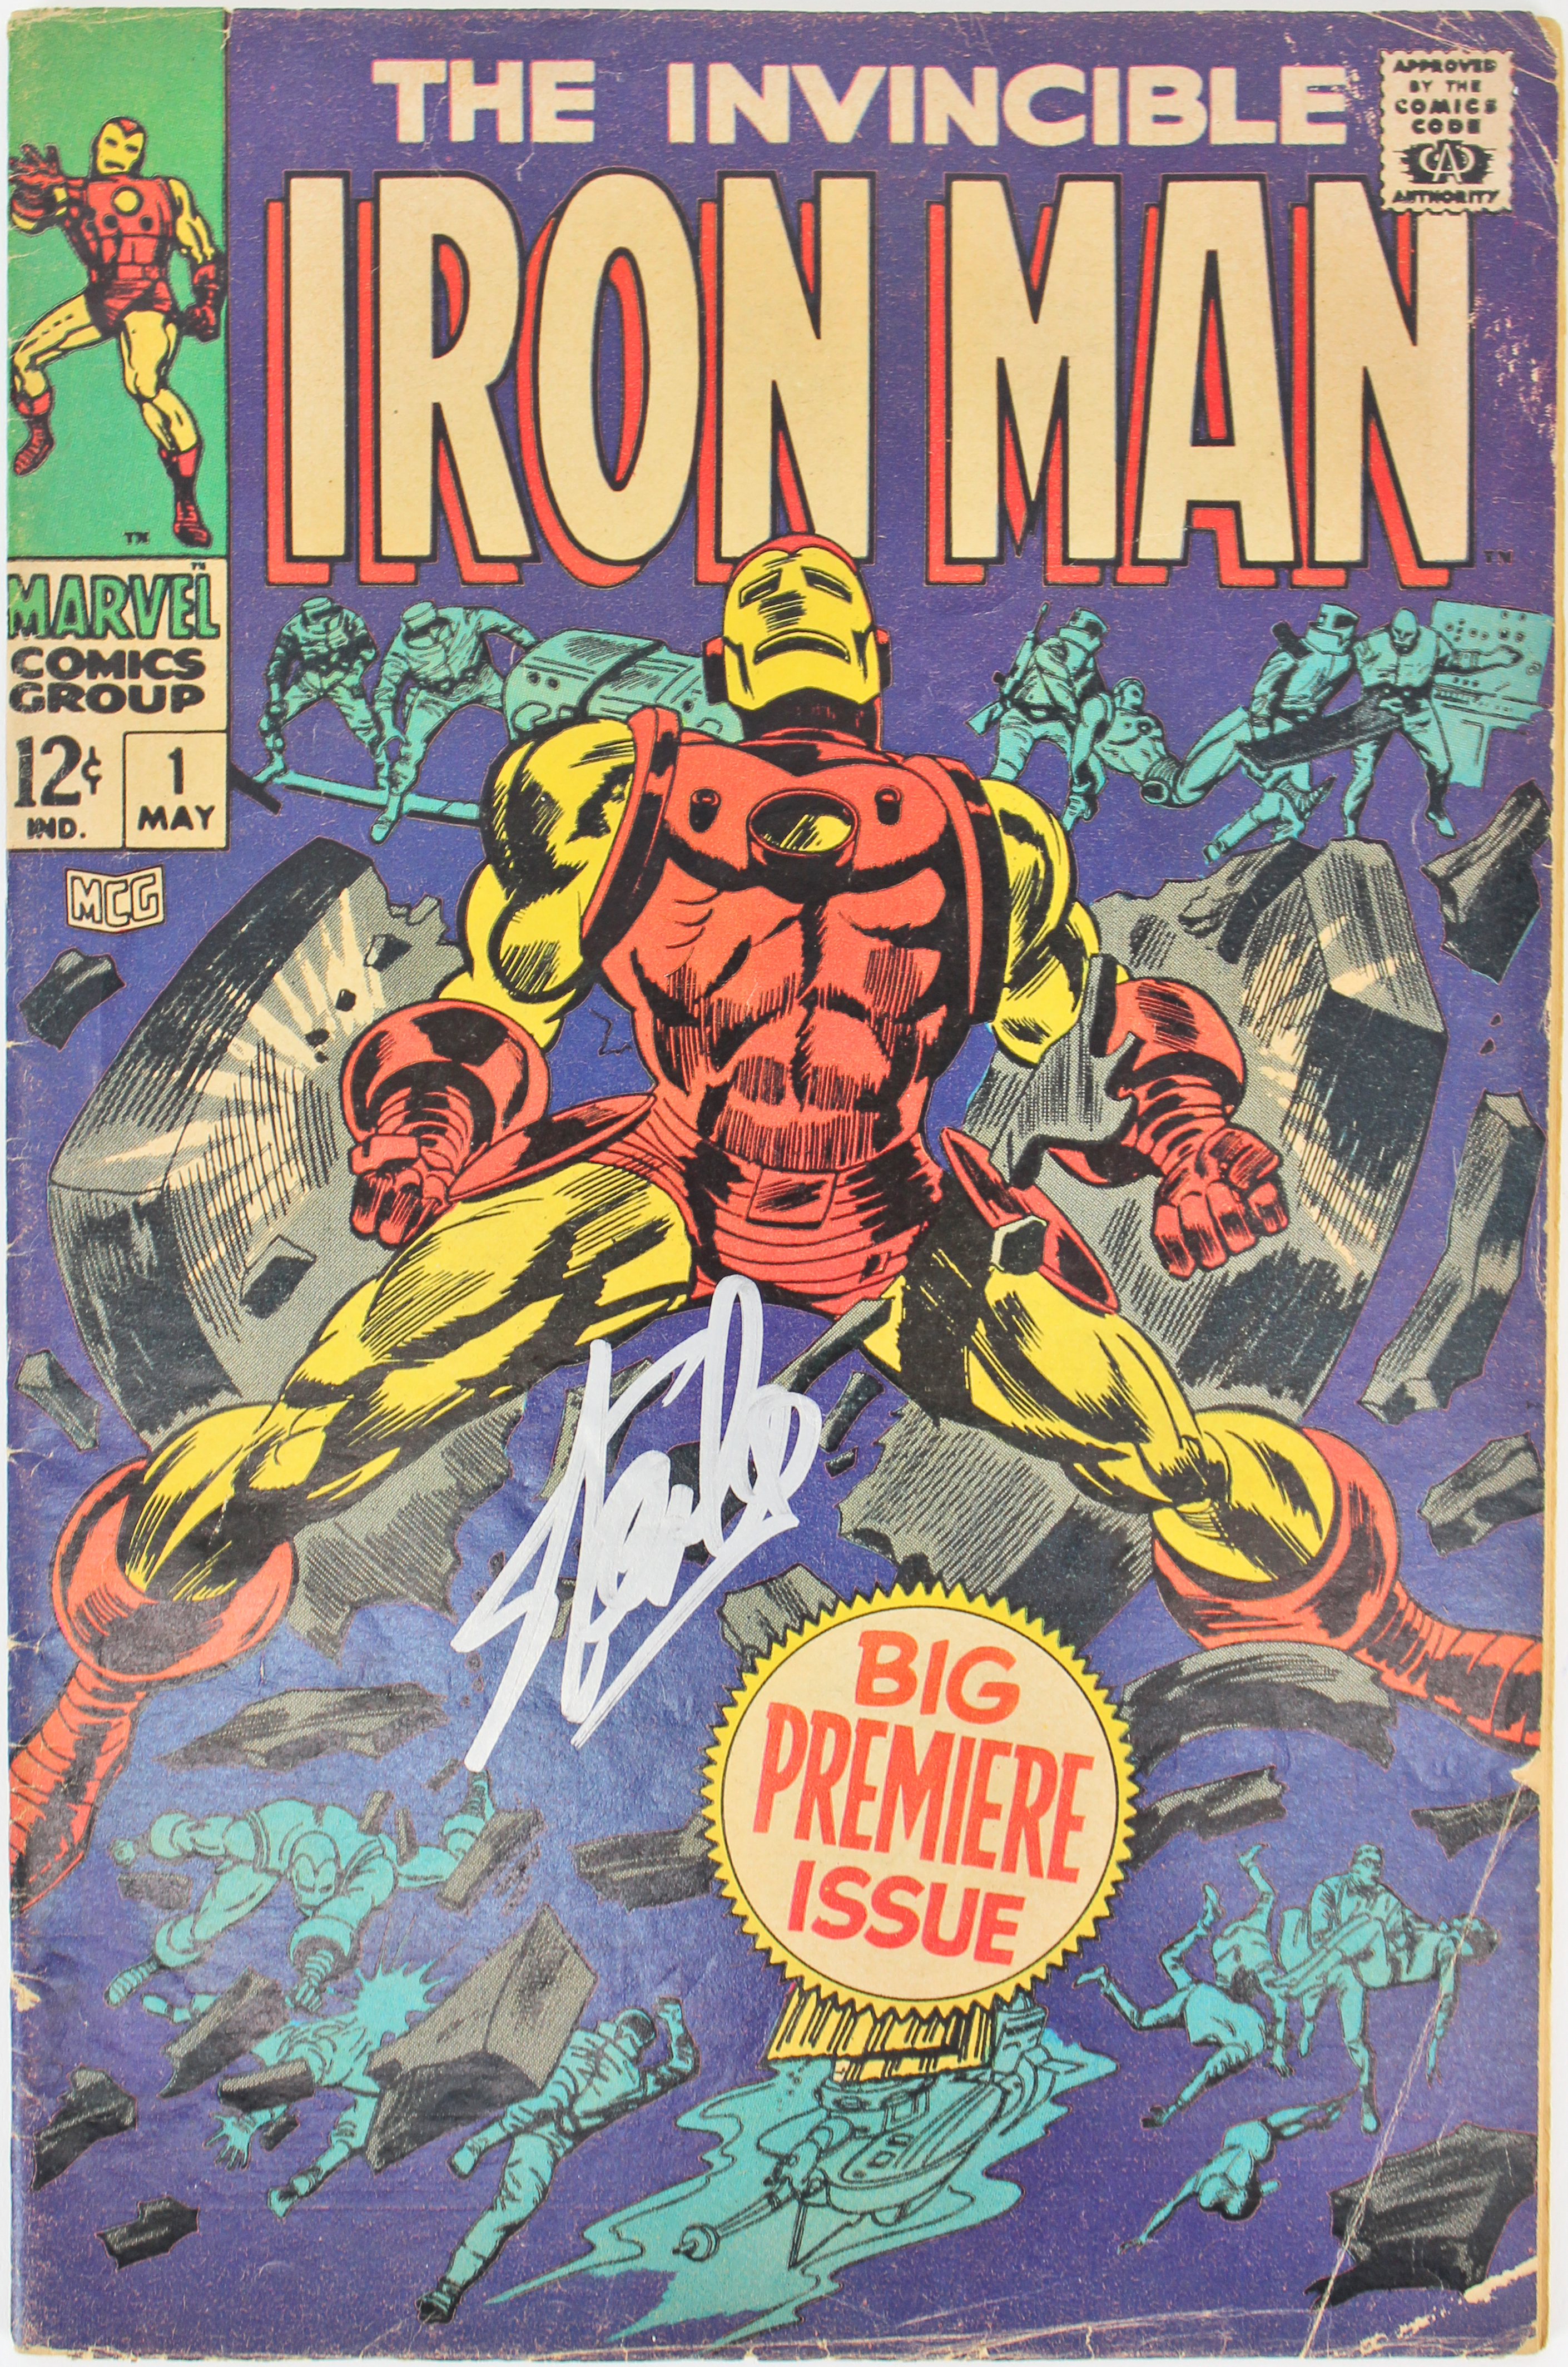 Stan Lee Authentic Signed The Invincible Iron Man #1 Comic PSA/DNA Itp #6A20968